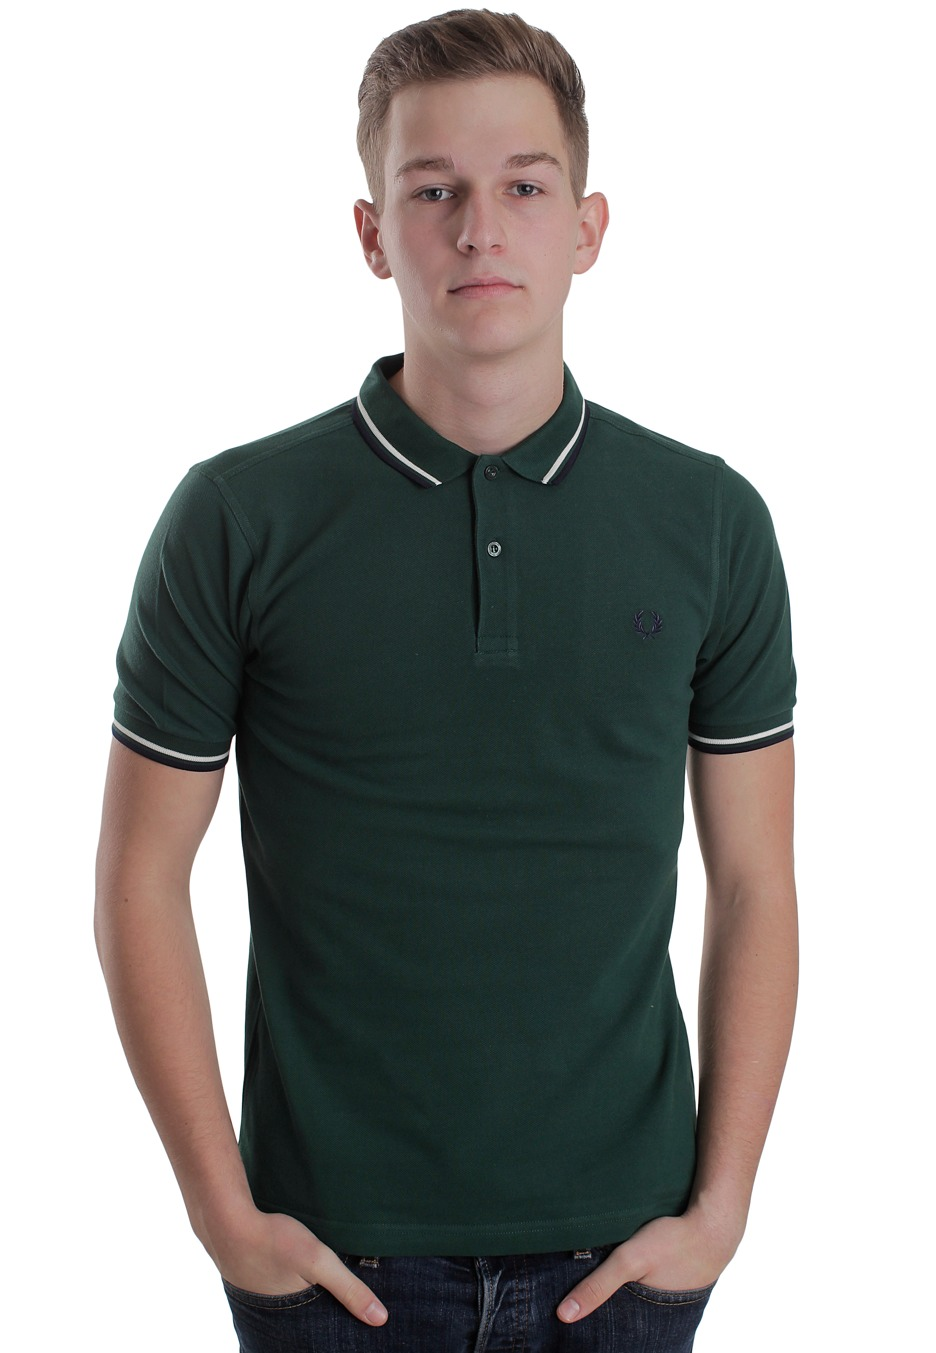 afe4e2212 Fred Perry - Slim Fit Twin Tipped Ivy Ecru Blue Granite - Polo - Streetwear  Shop - Impericon.com Worldwide